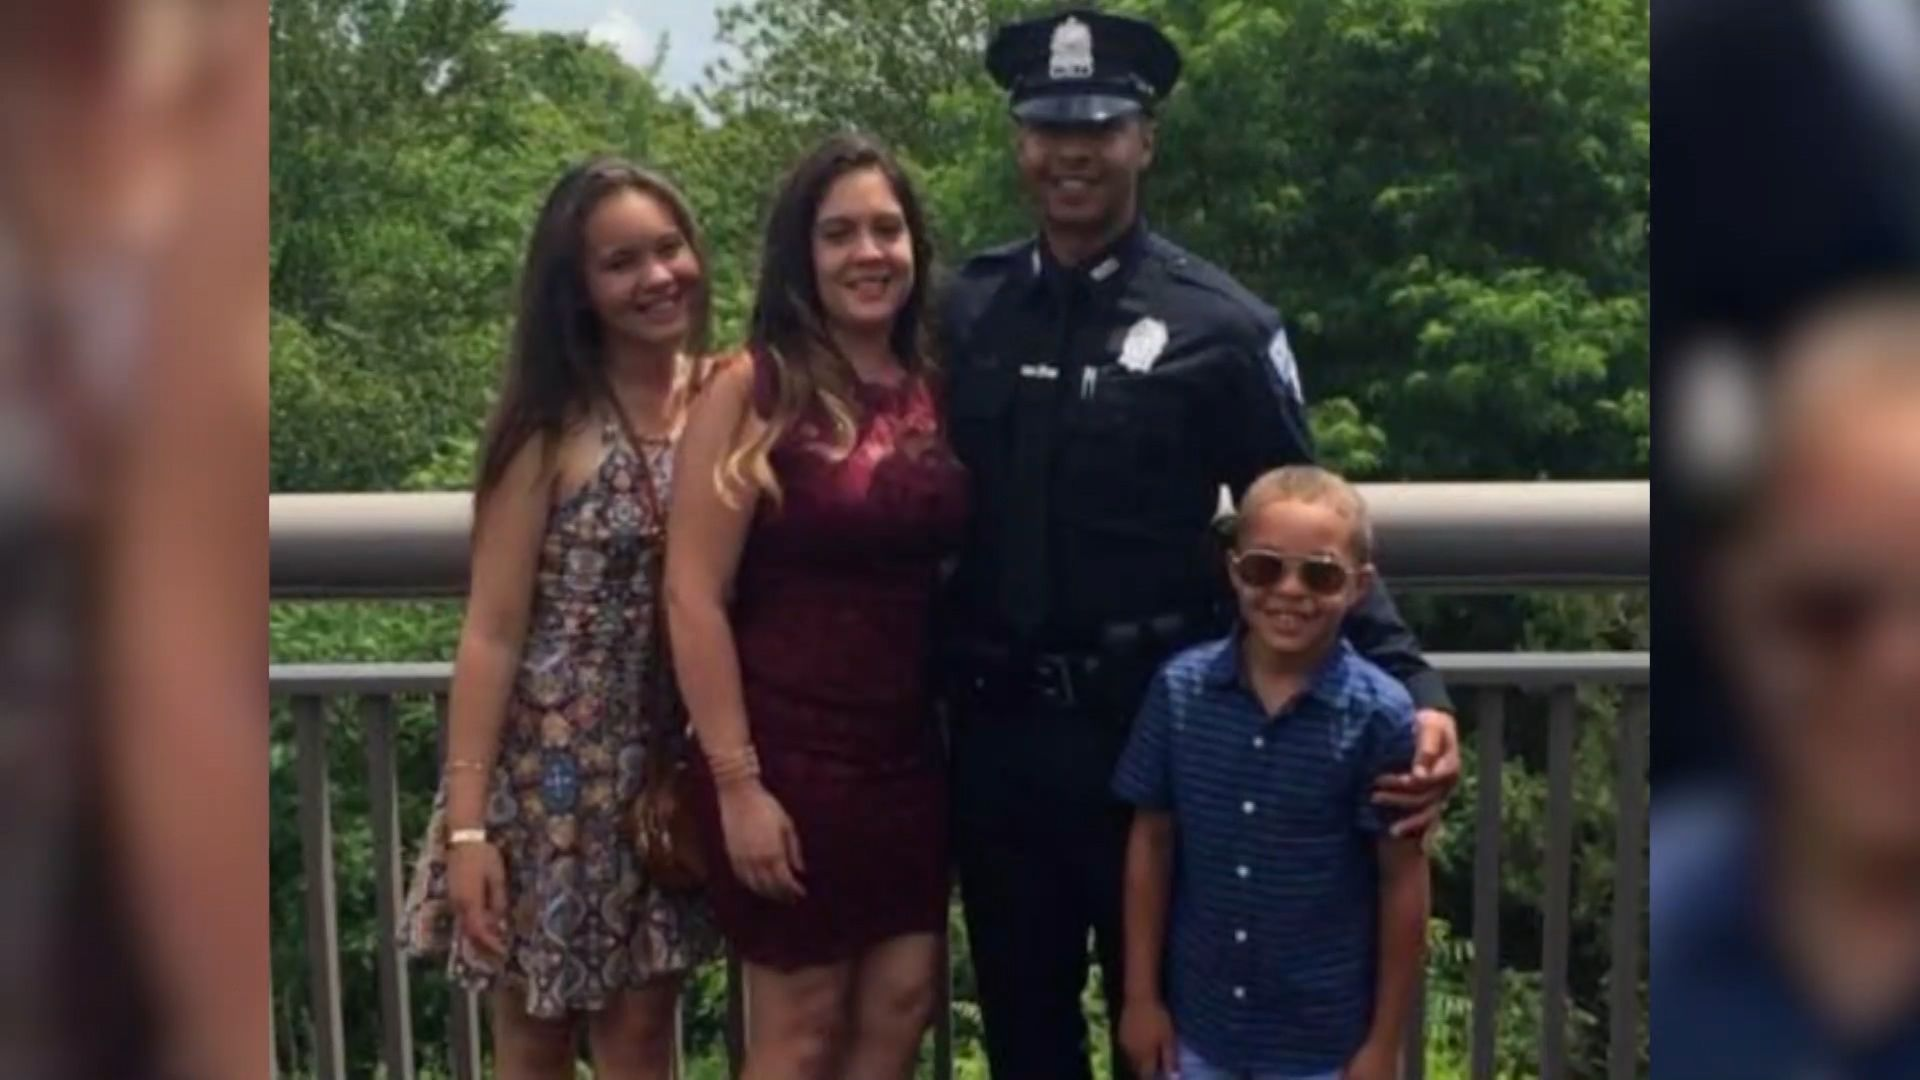 Worcester City Council votes to give fallen police officer's wife his full pension